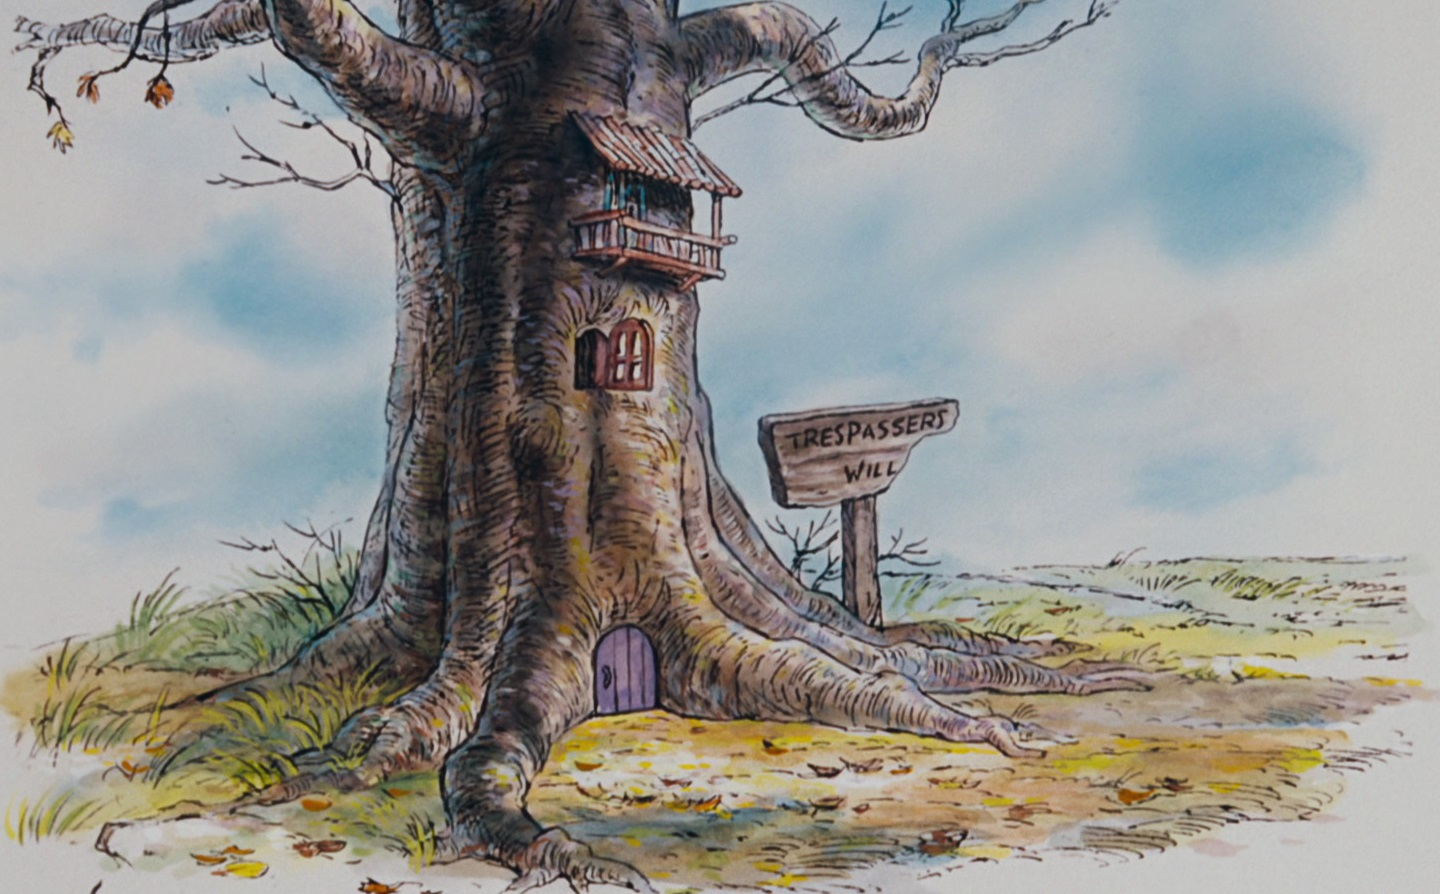 Wood Interior Homes Piglet S House Disney Wiki Wikia